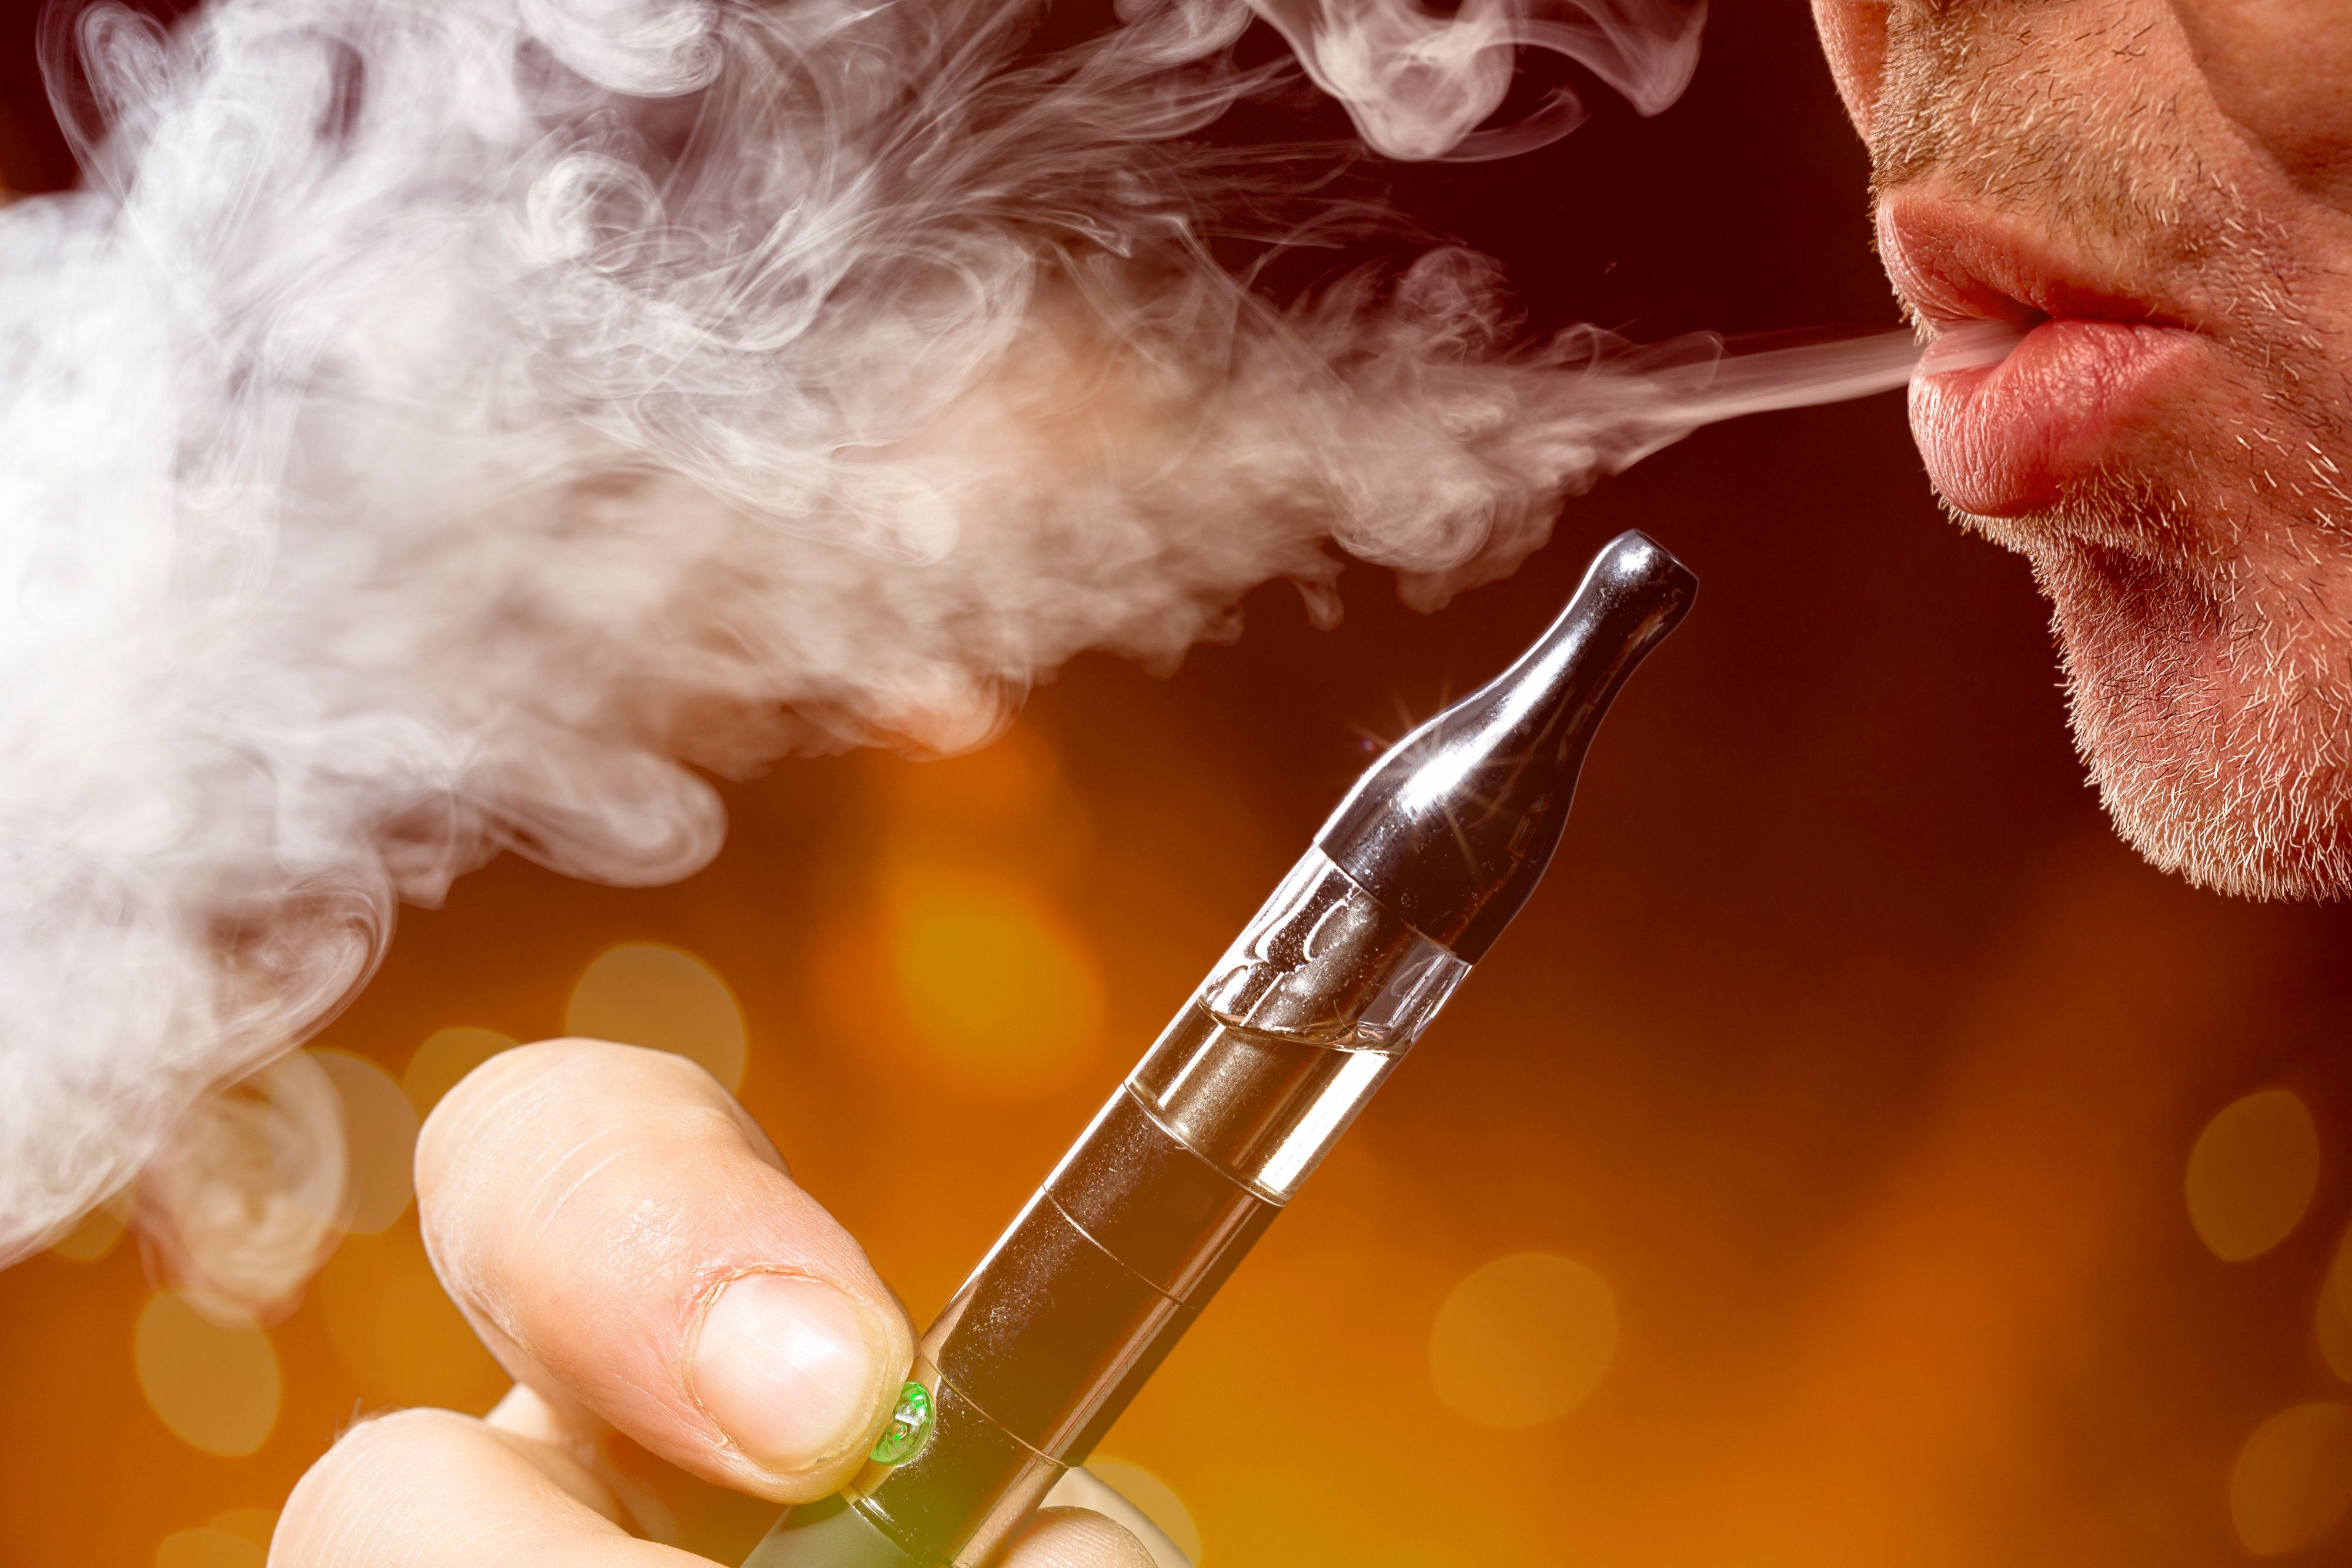 Fake E-Cigarettes Could Hack Computers, Warn